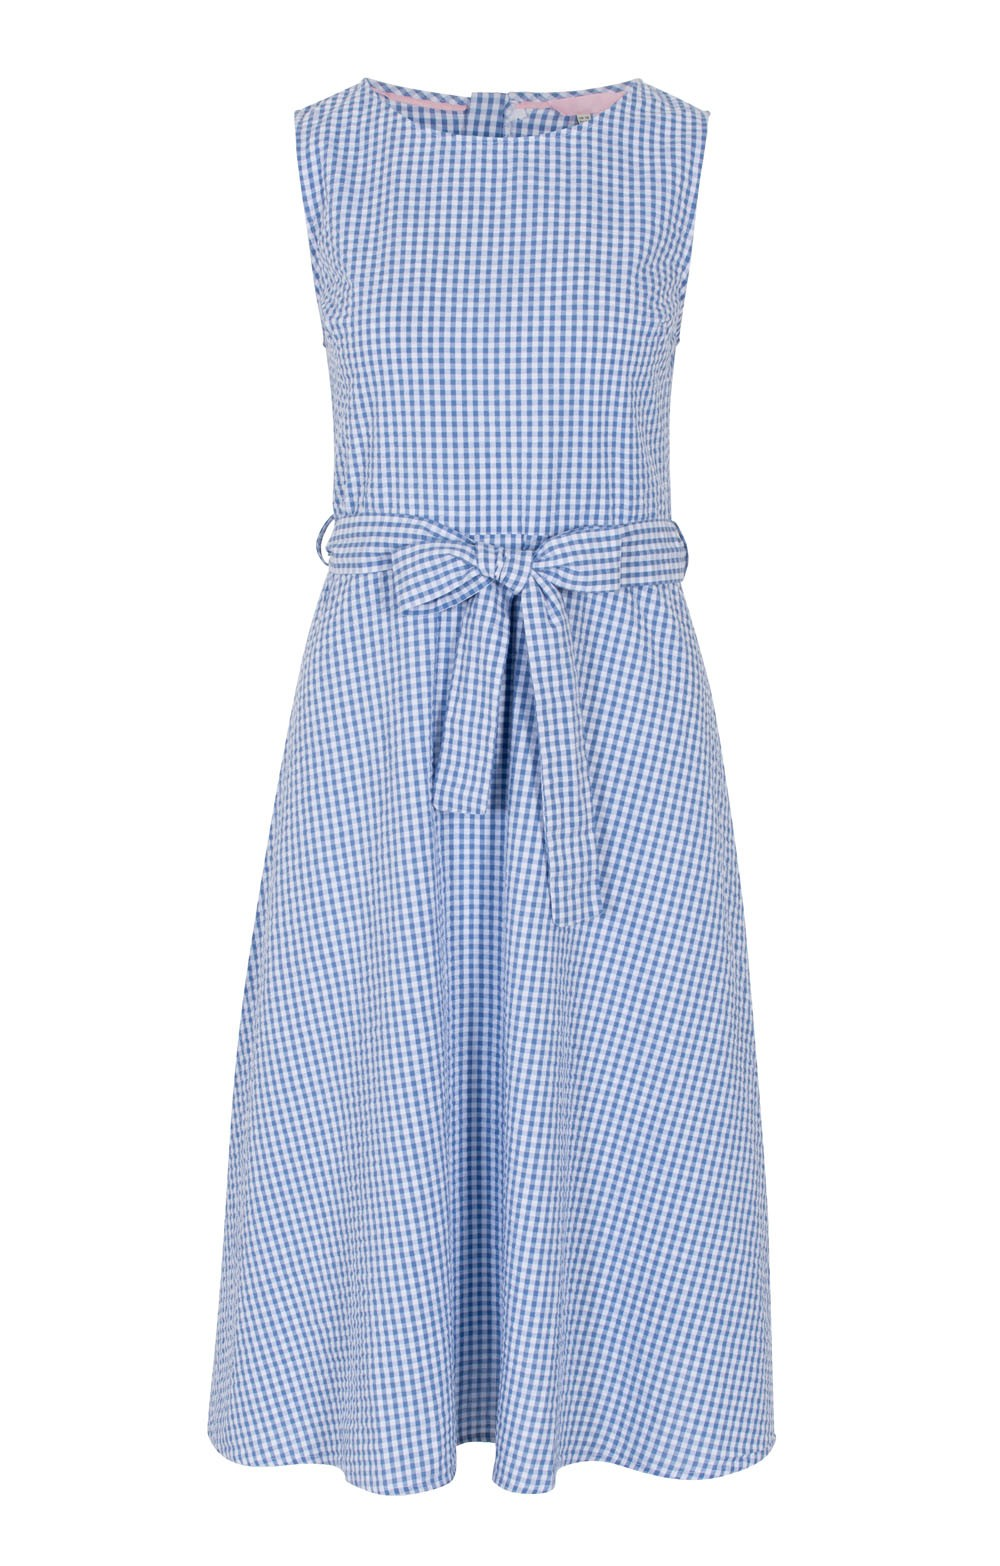 e3af0a5c3 Ladies Joules Fiona Sleeveless Dress - House of Bruar